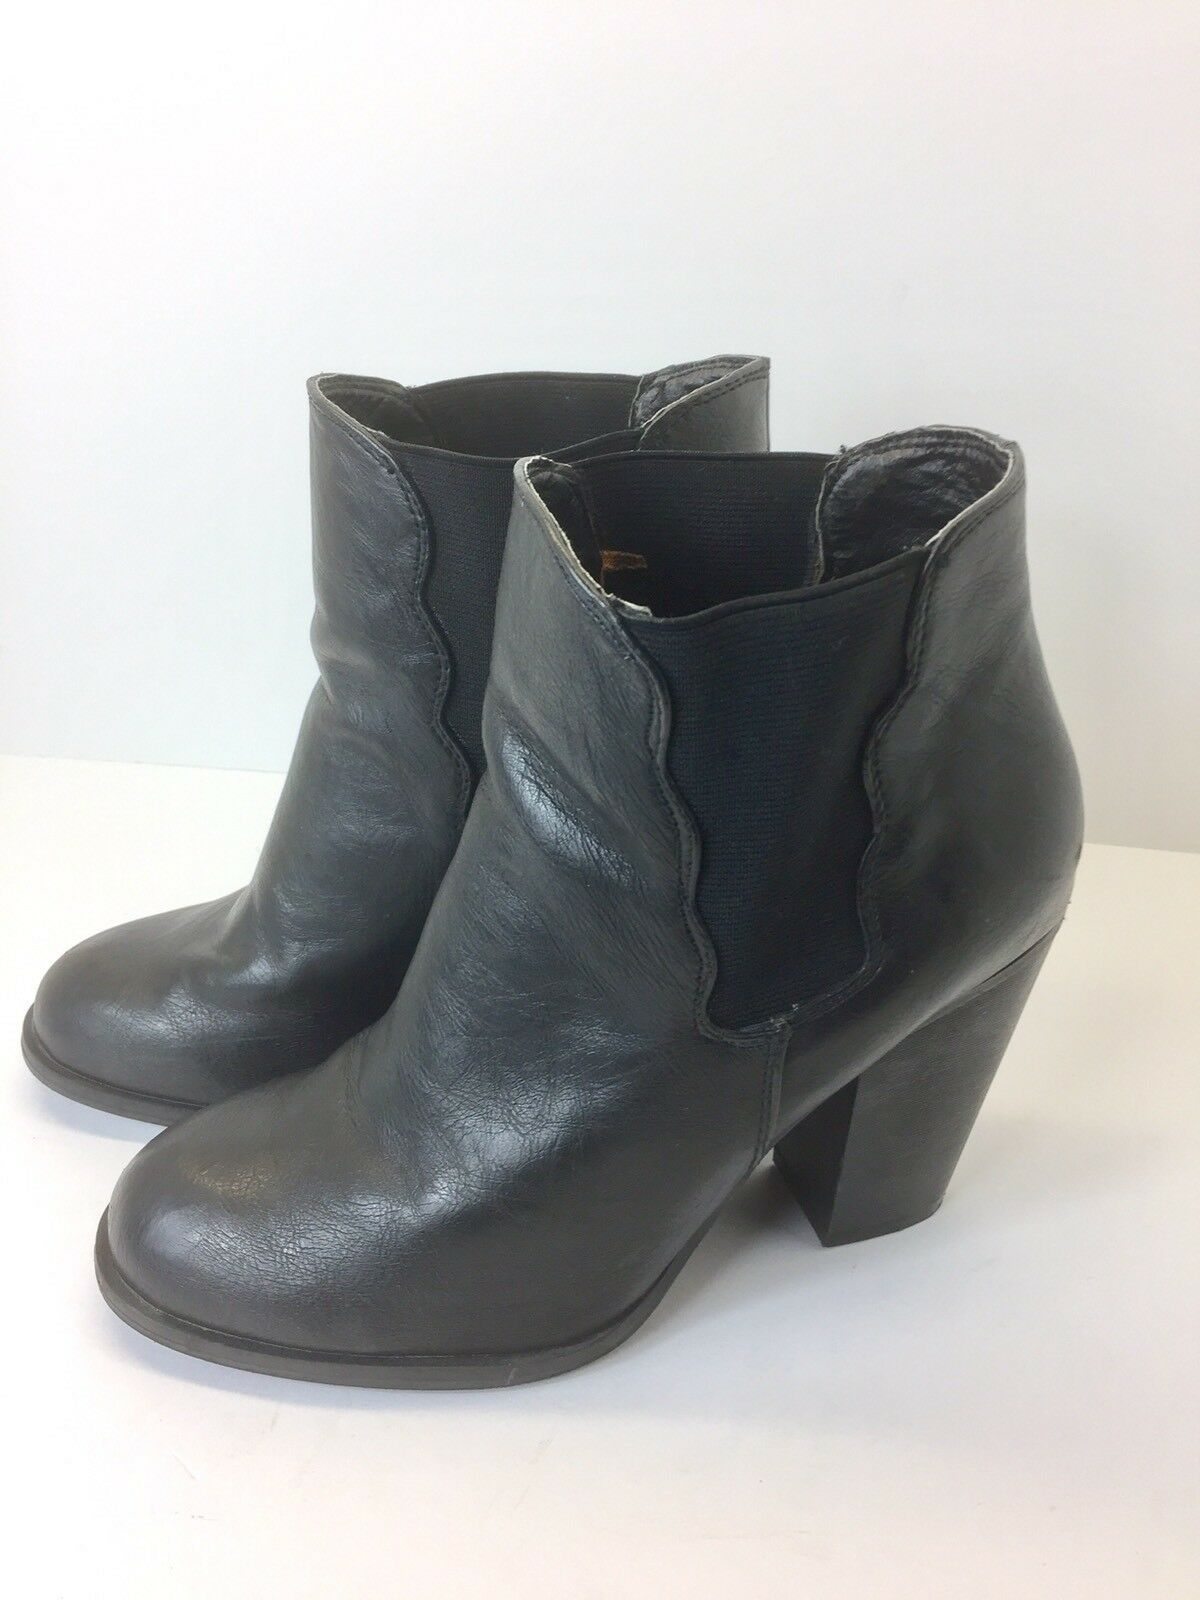 Betsey Johnson Womens Nattalie Black Leather Booties Ankle Boots Shoes Size 8.5M